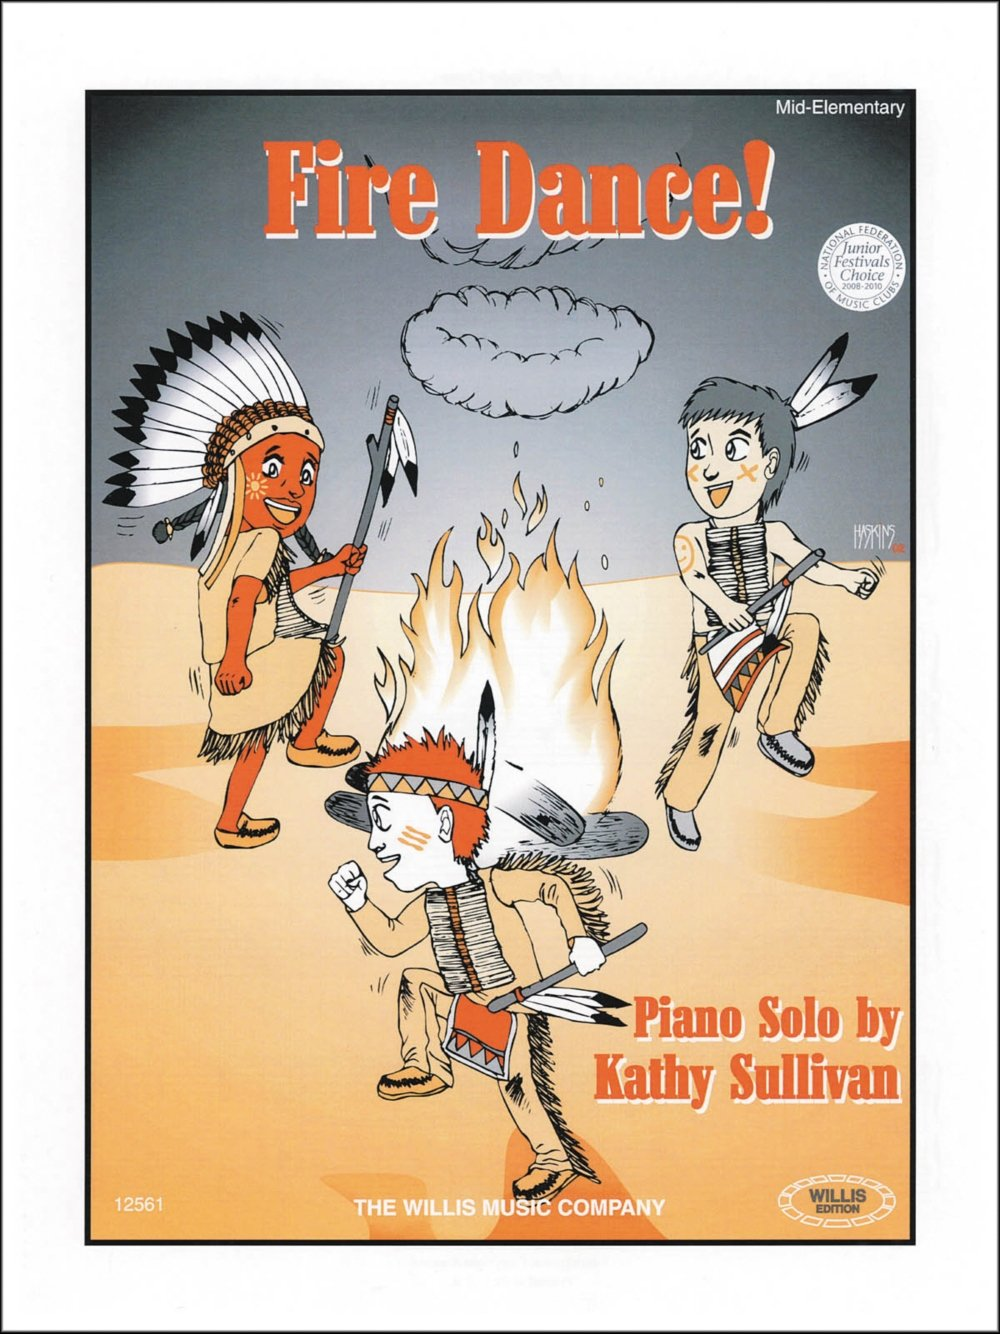 Download Willis Music Fire Dance Mid-Elementary Piano by Kathy Sullivan pdf